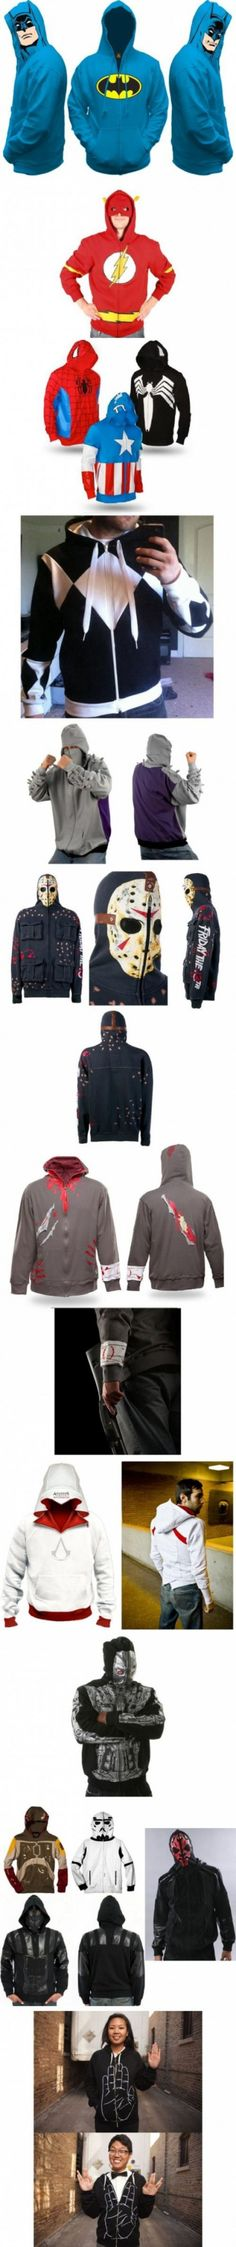 AWESOME hoodies and jackets